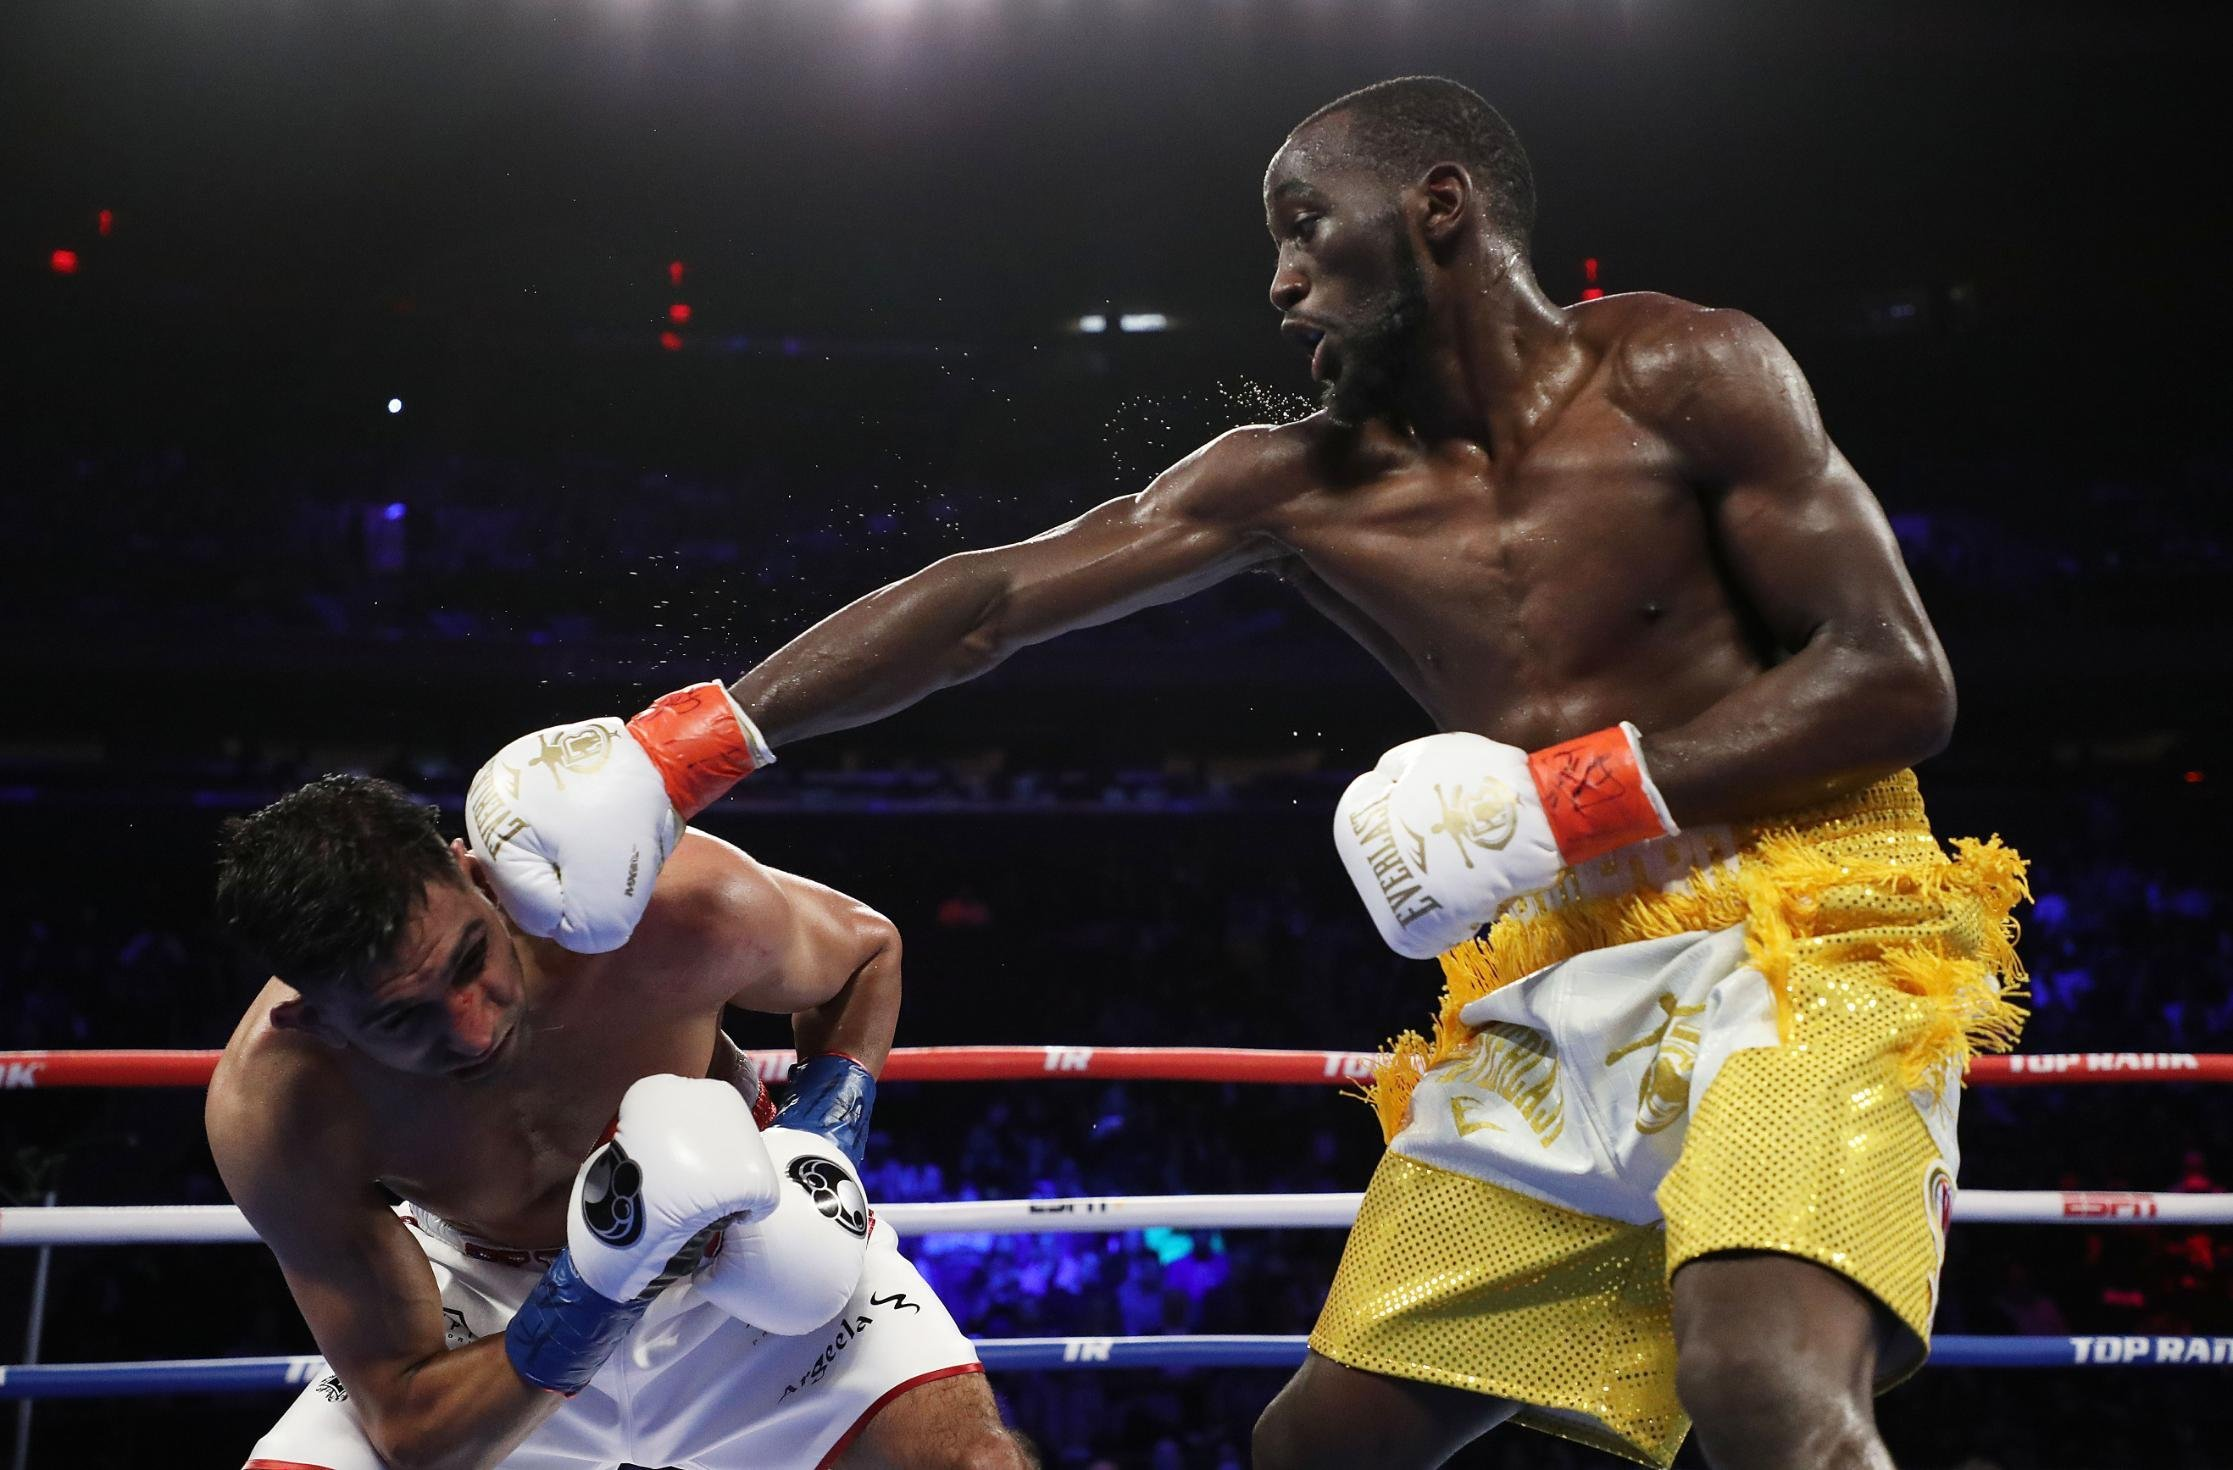 Hit by a bullet, boxer Terence Crawford vowed to change his life